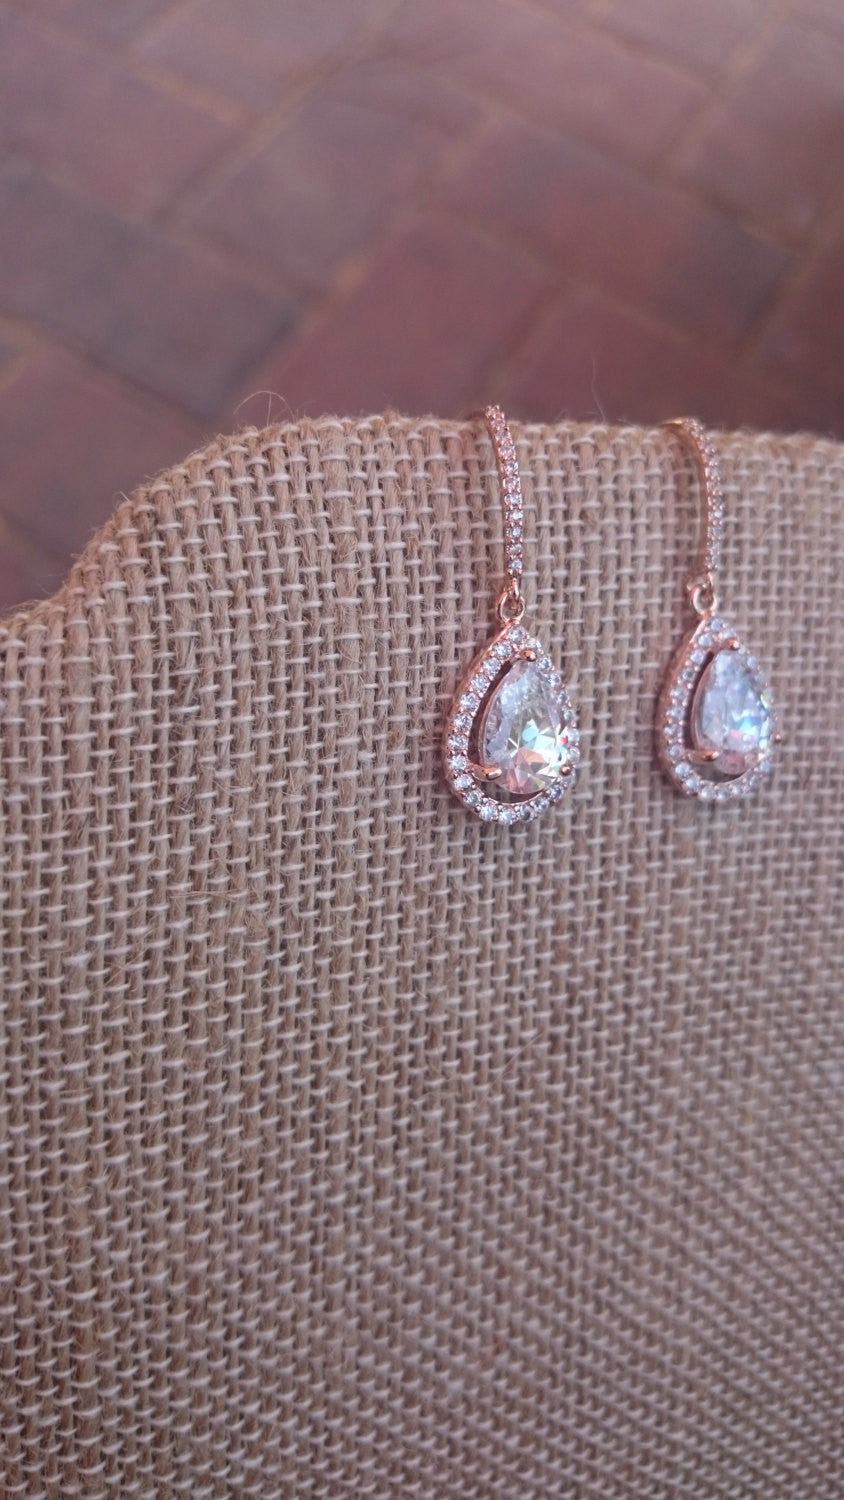 Kate Middleton Earrings, Rose Gold Earrings, Bridal Earrings, Dangle Earrings, Bridesmaid Gift, CZ Earrings, Teardrop Earrings